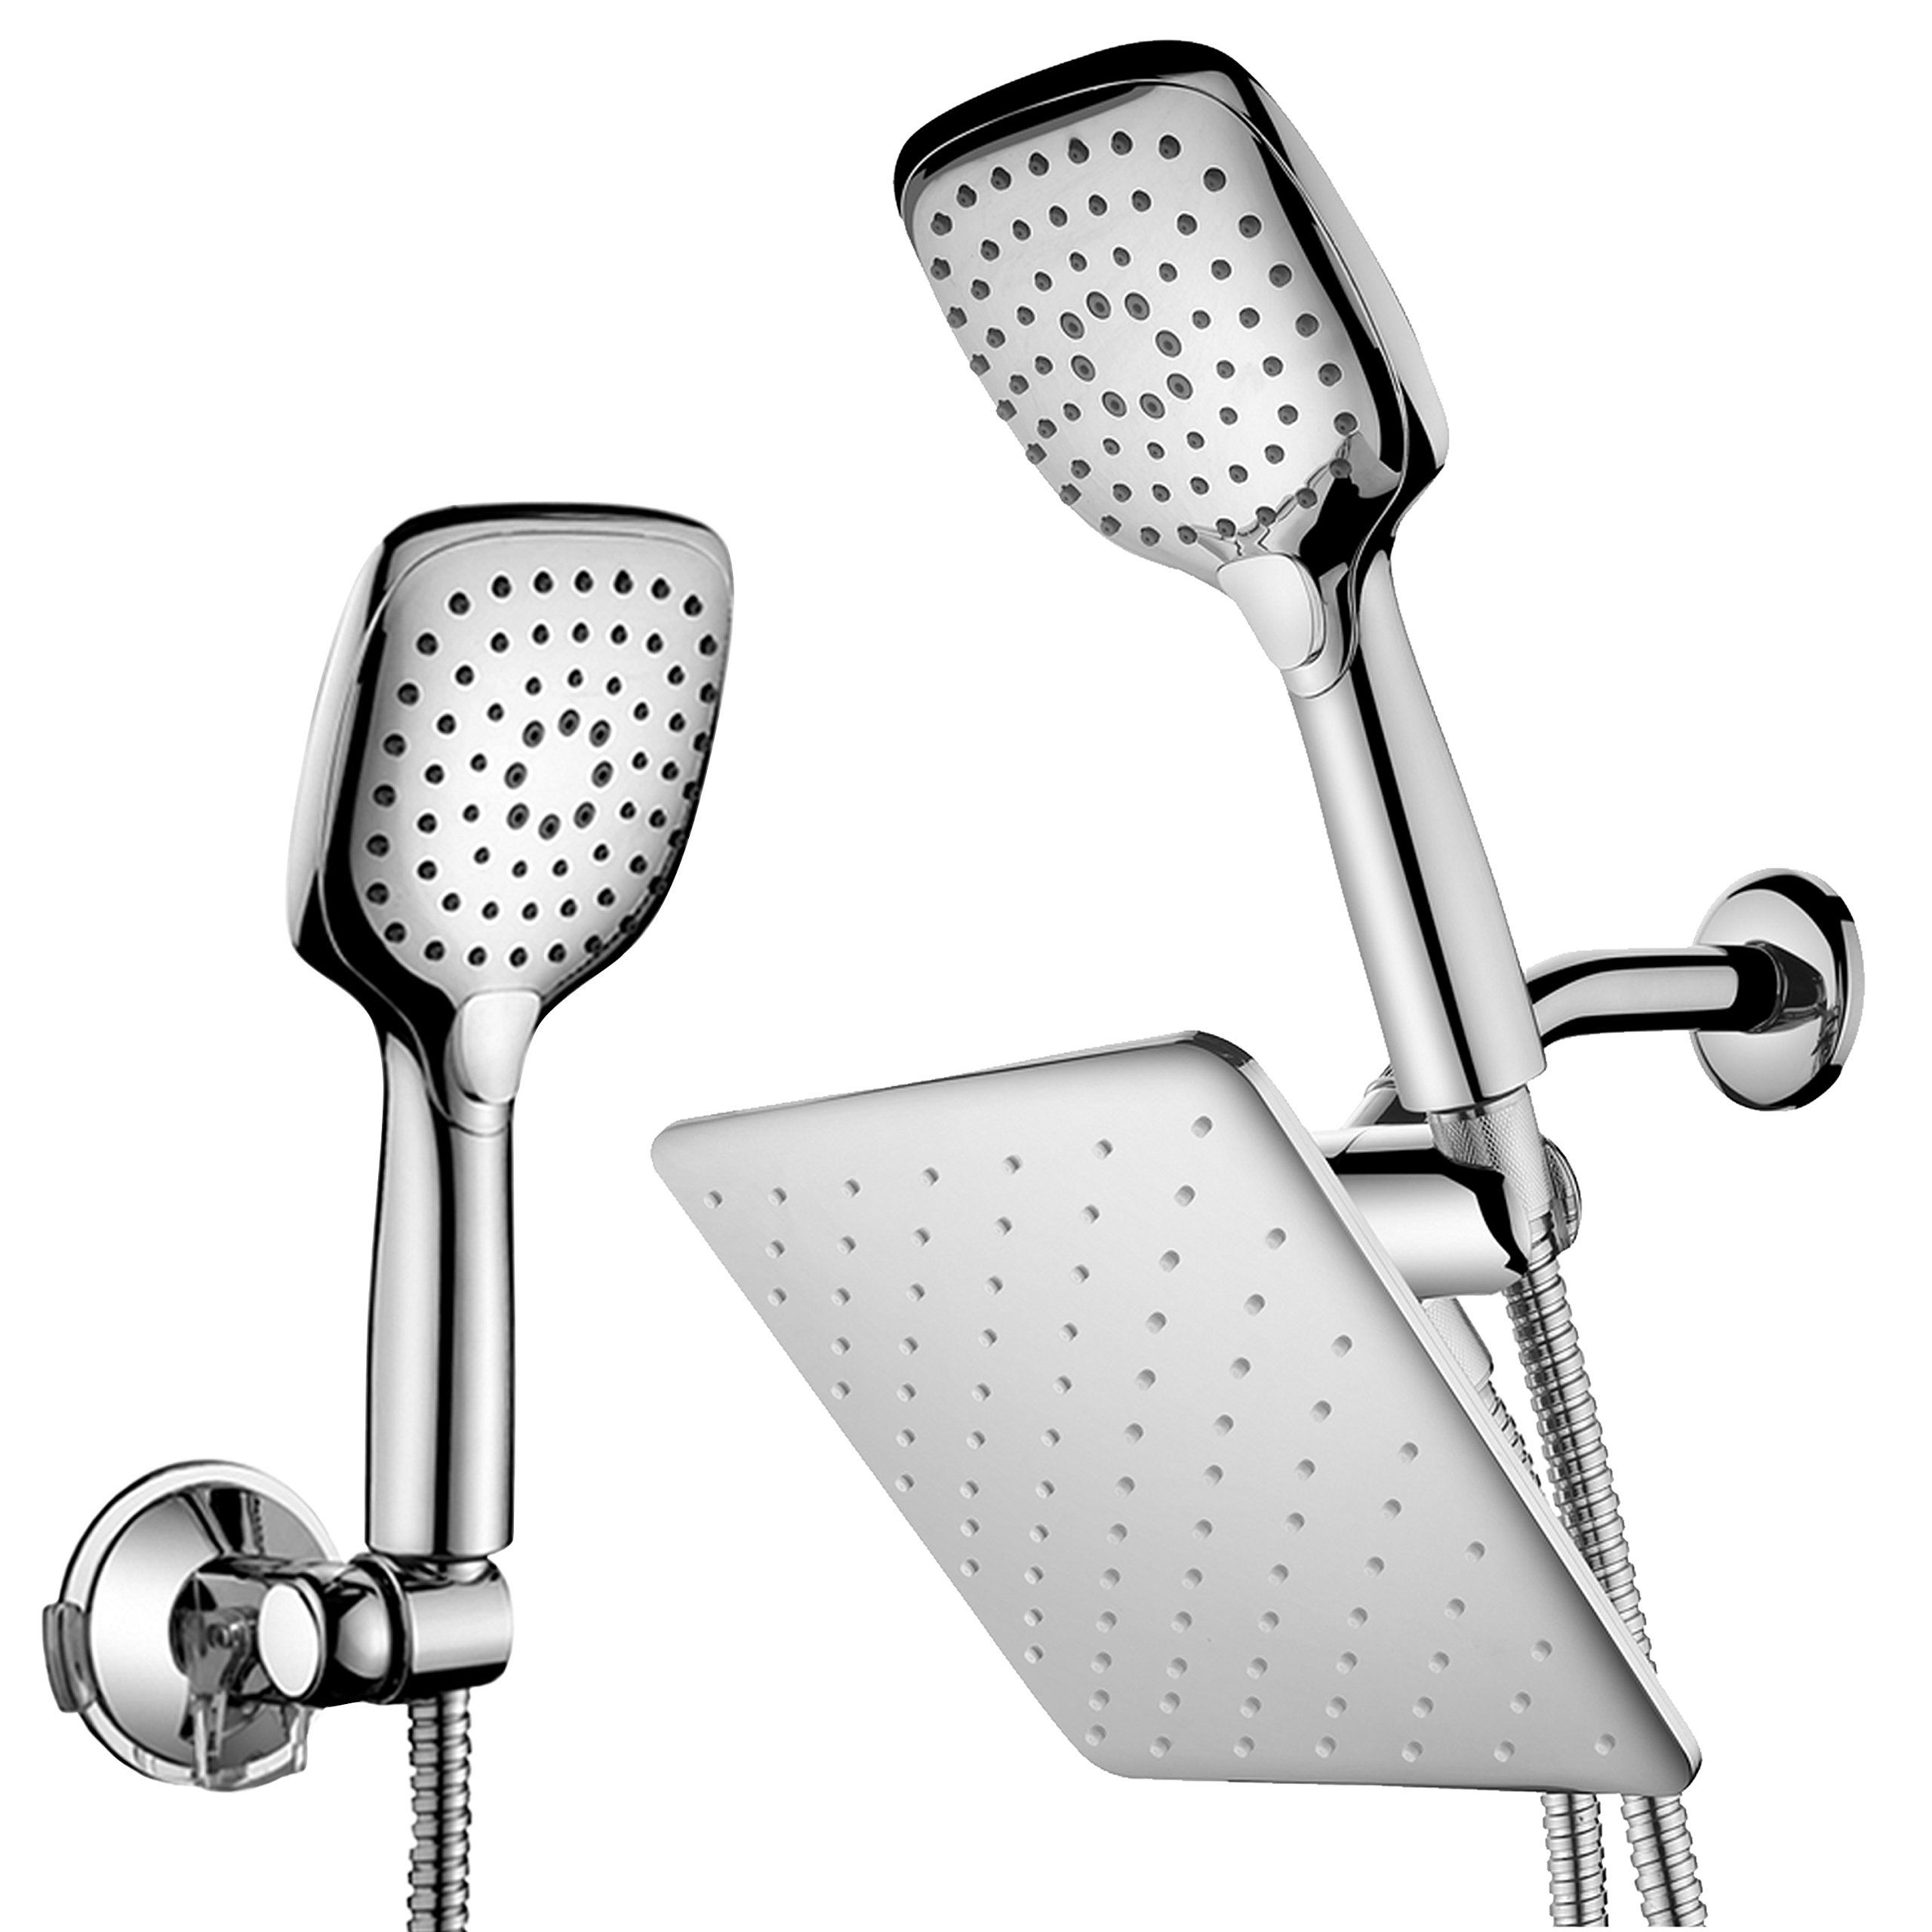 HotelSpa 10.5-in Rain Shower Head/Handheld Combo. Convenient Push-Button Flow Control Button for easy one-handed operation. Switch flow settings with the same hand! Low-Reach Bracket included